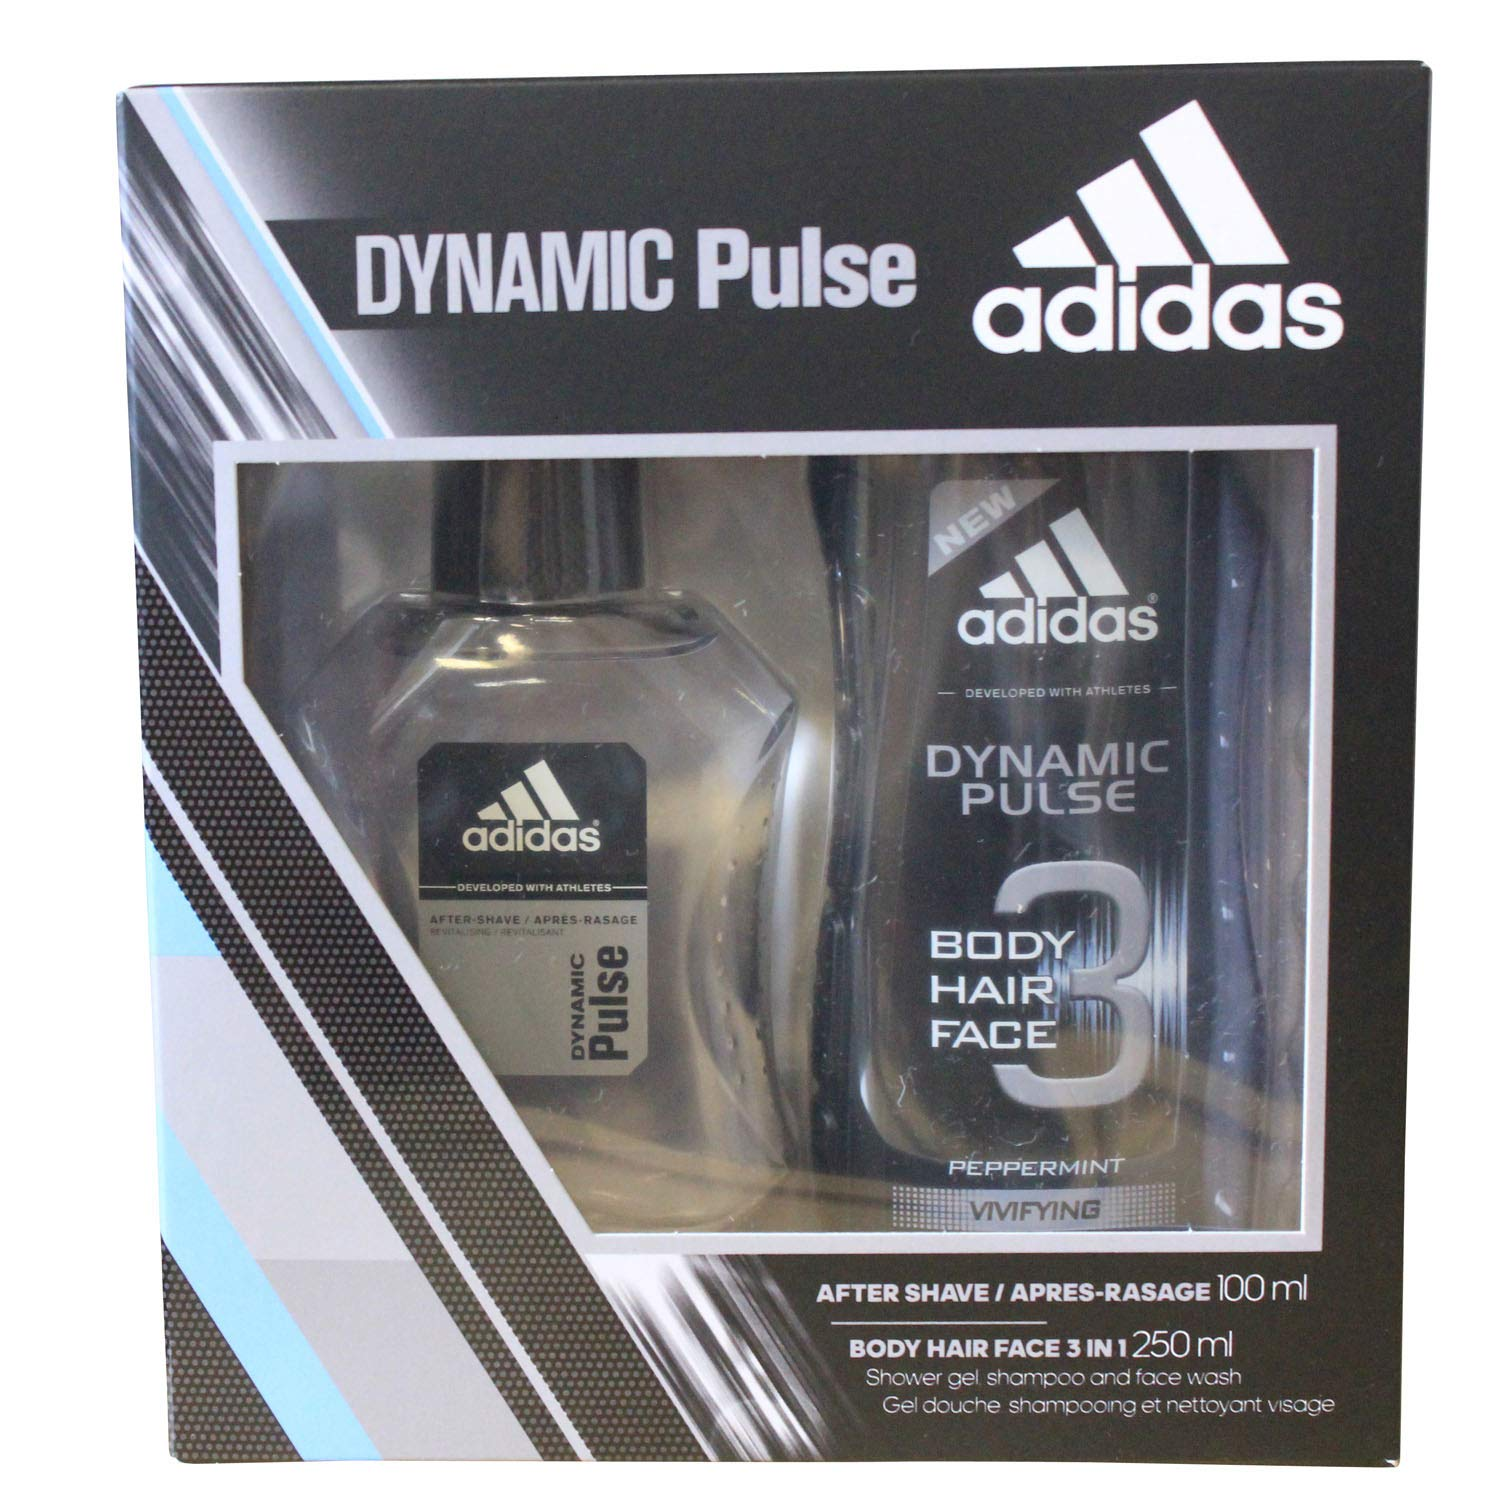 Adidas Dynamic Pulse 100ml After Shave and 250ml Body Hair Face Wash Men's Gift Set